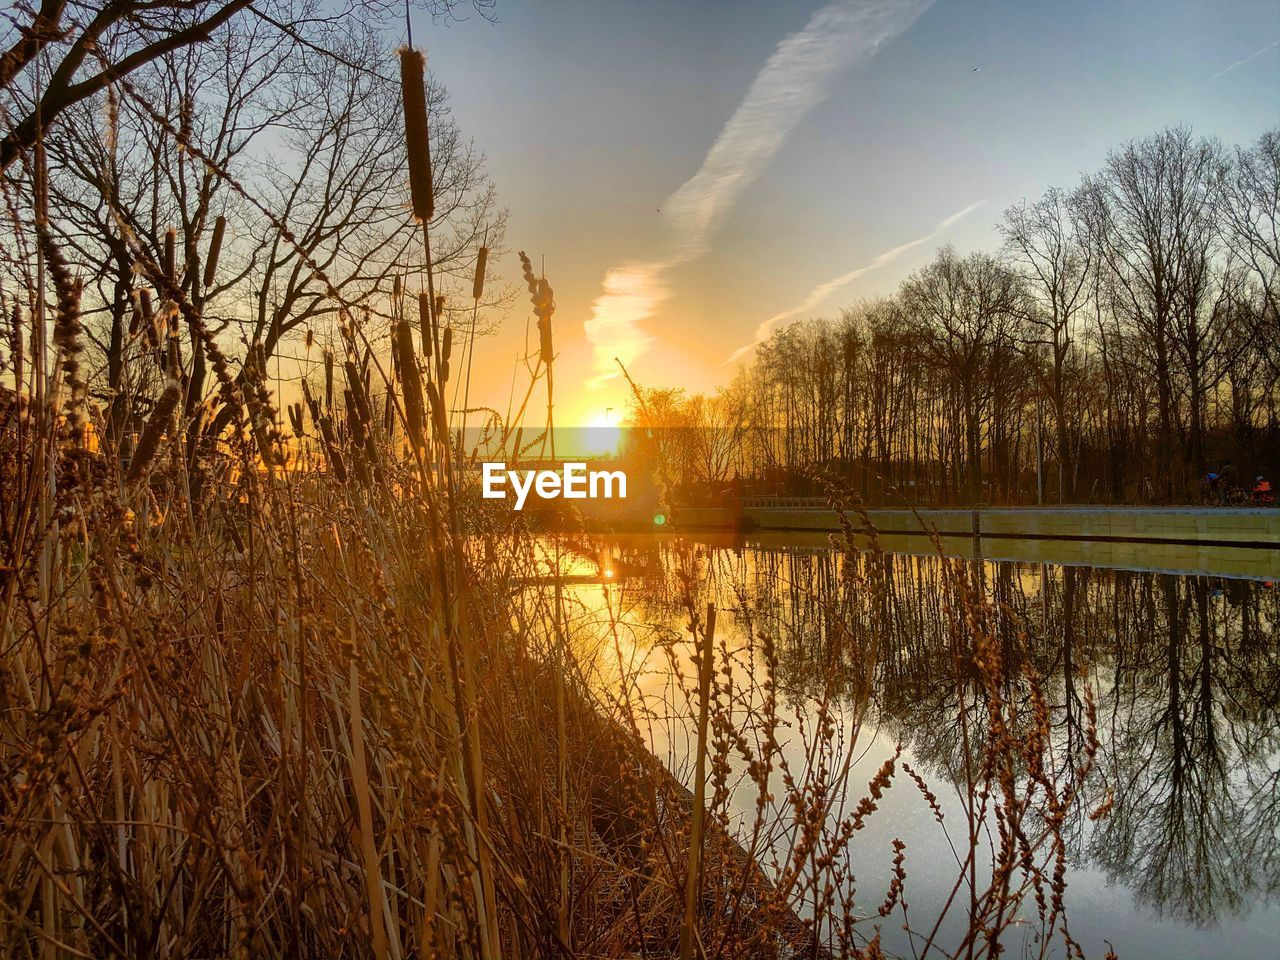 sky, sunset, scenics - nature, tranquility, beauty in nature, tree, reflection, plant, tranquil scene, lake, water, nature, sun, sunlight, no people, bare tree, sunbeam, idyllic, lens flare, outdoors